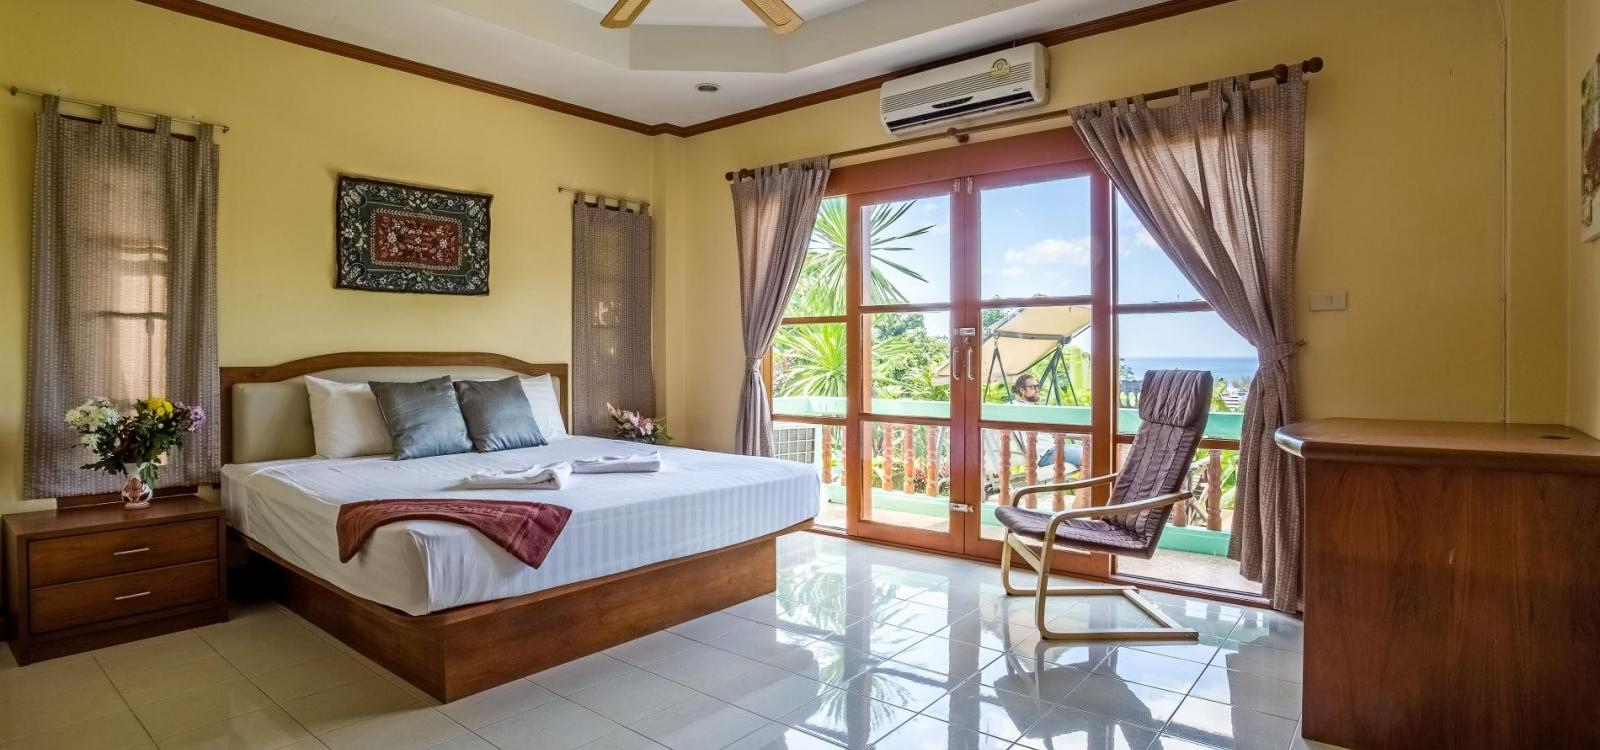 Vista Villa 1 - Seaview private pool villa in Patong for 9 people!